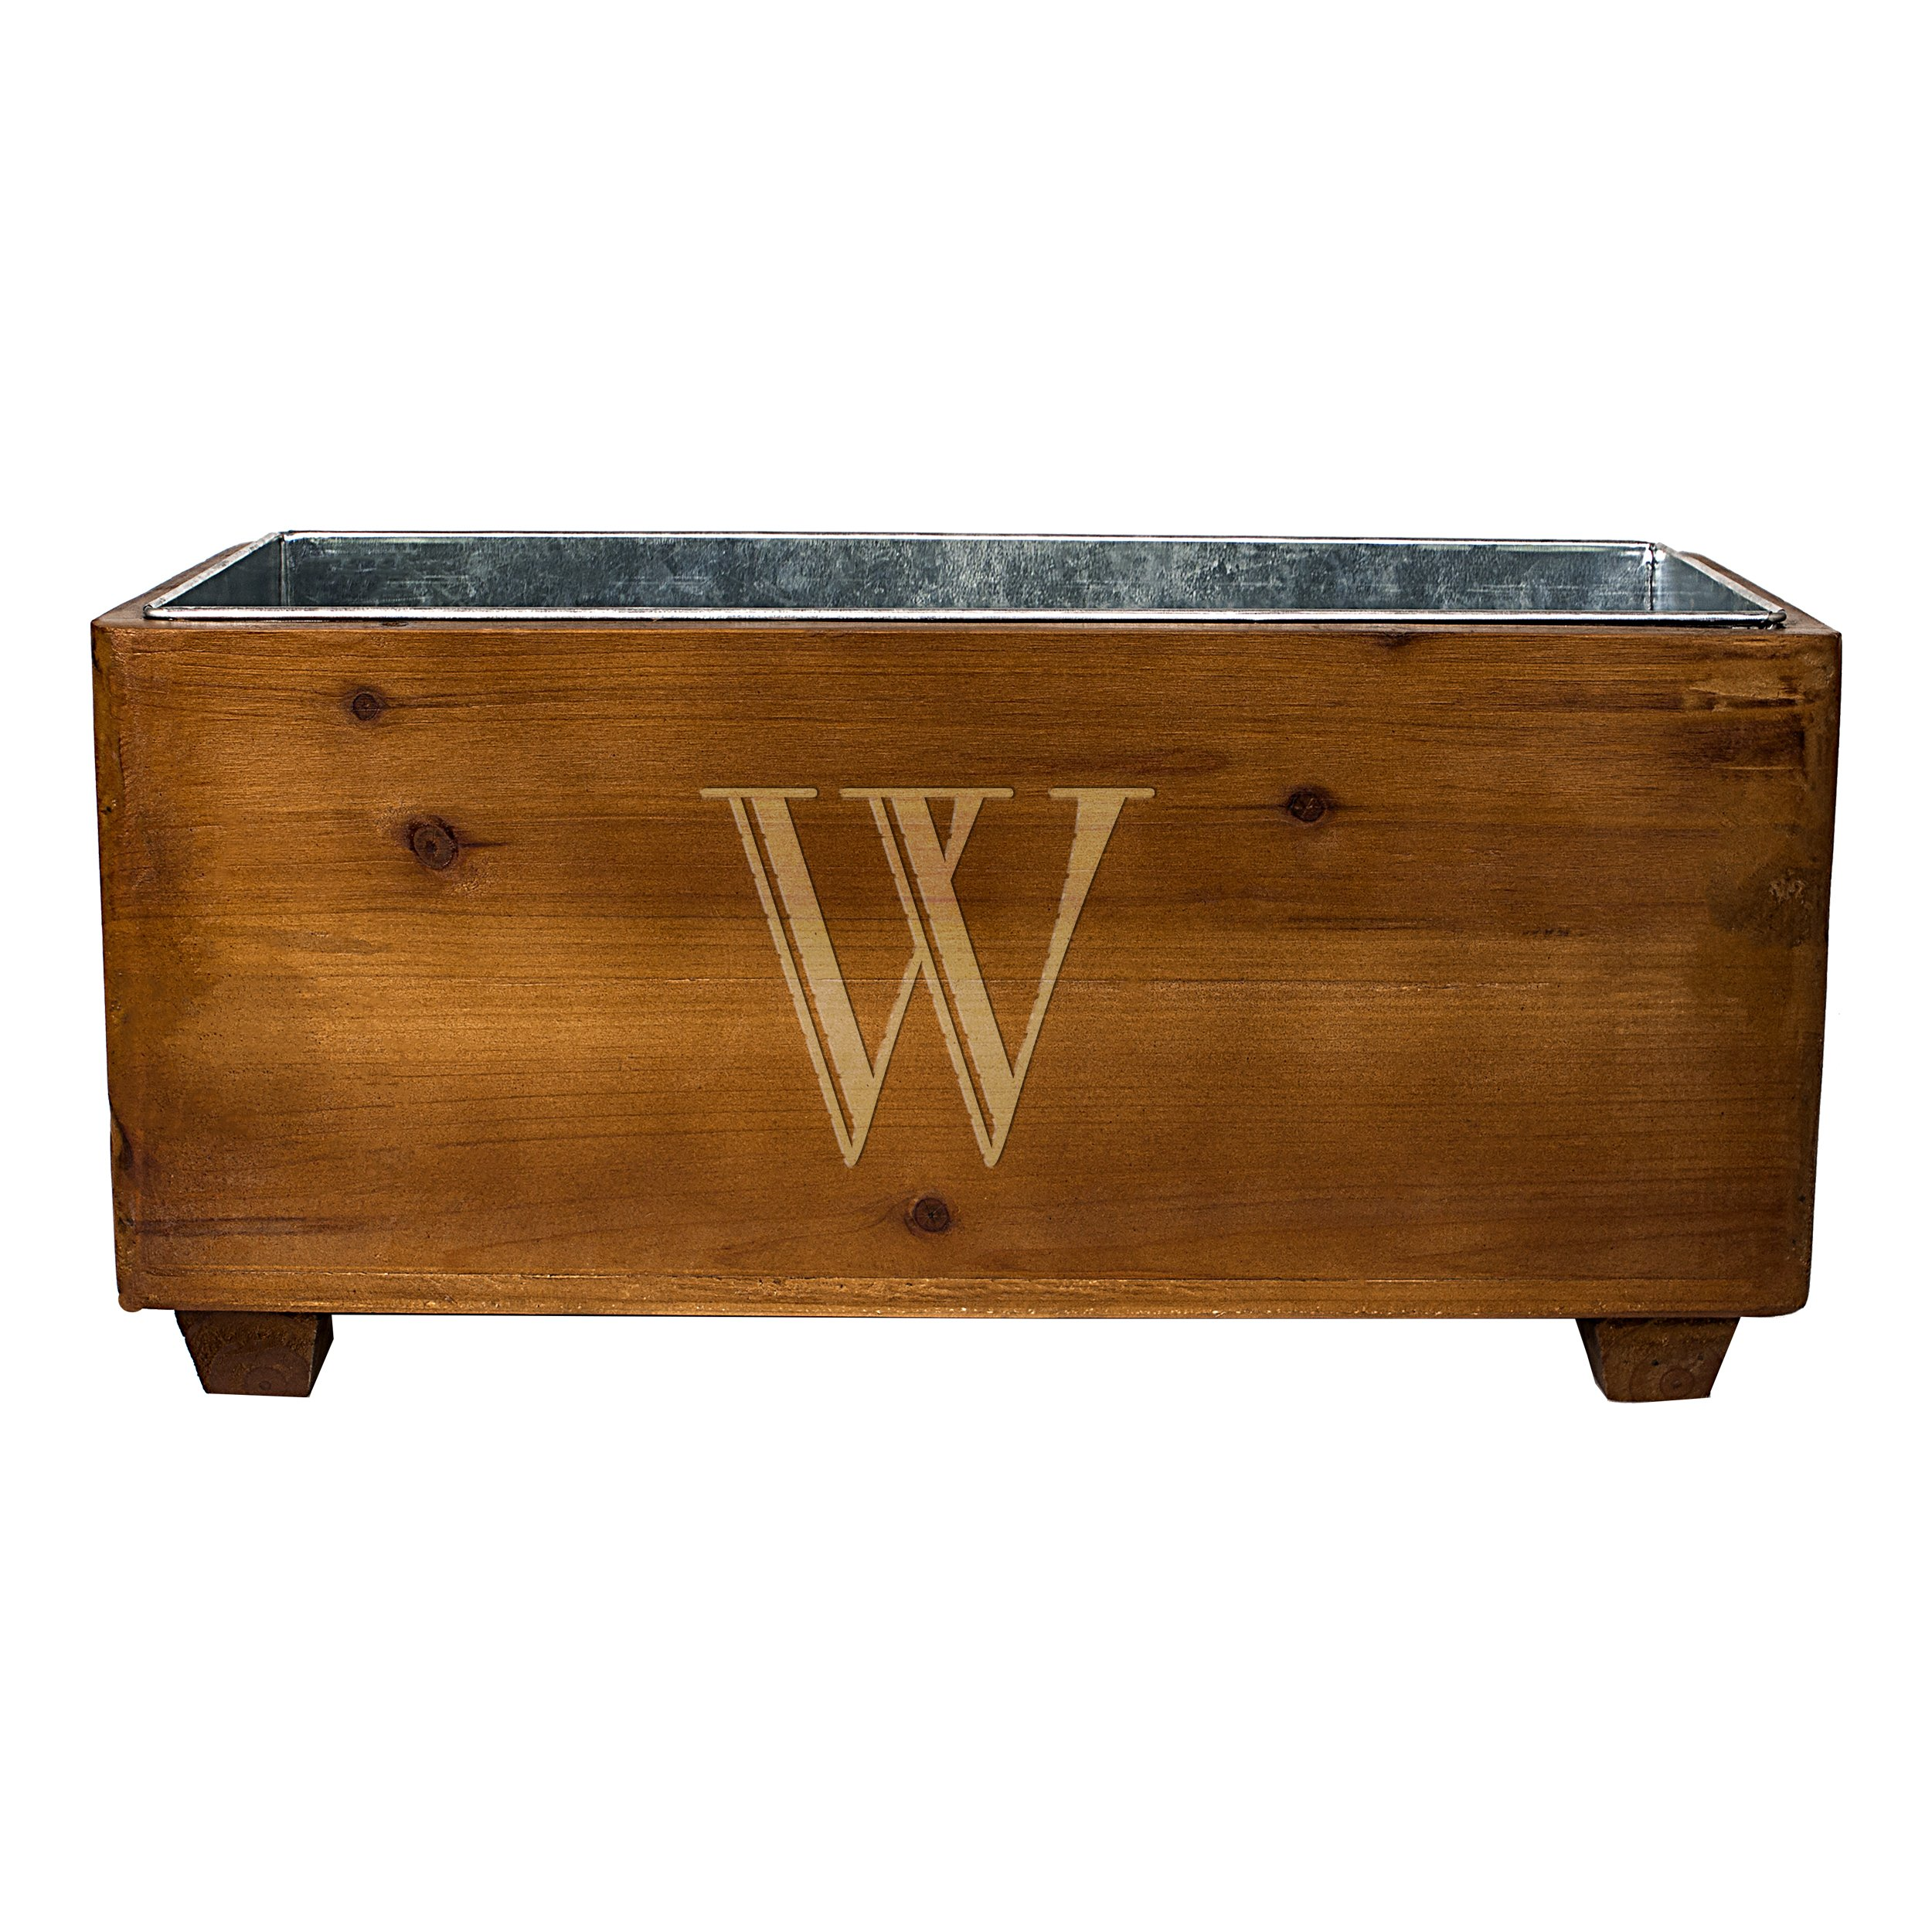 Cathy's Concepts Personalized Wooden Wine Trough, Letter W